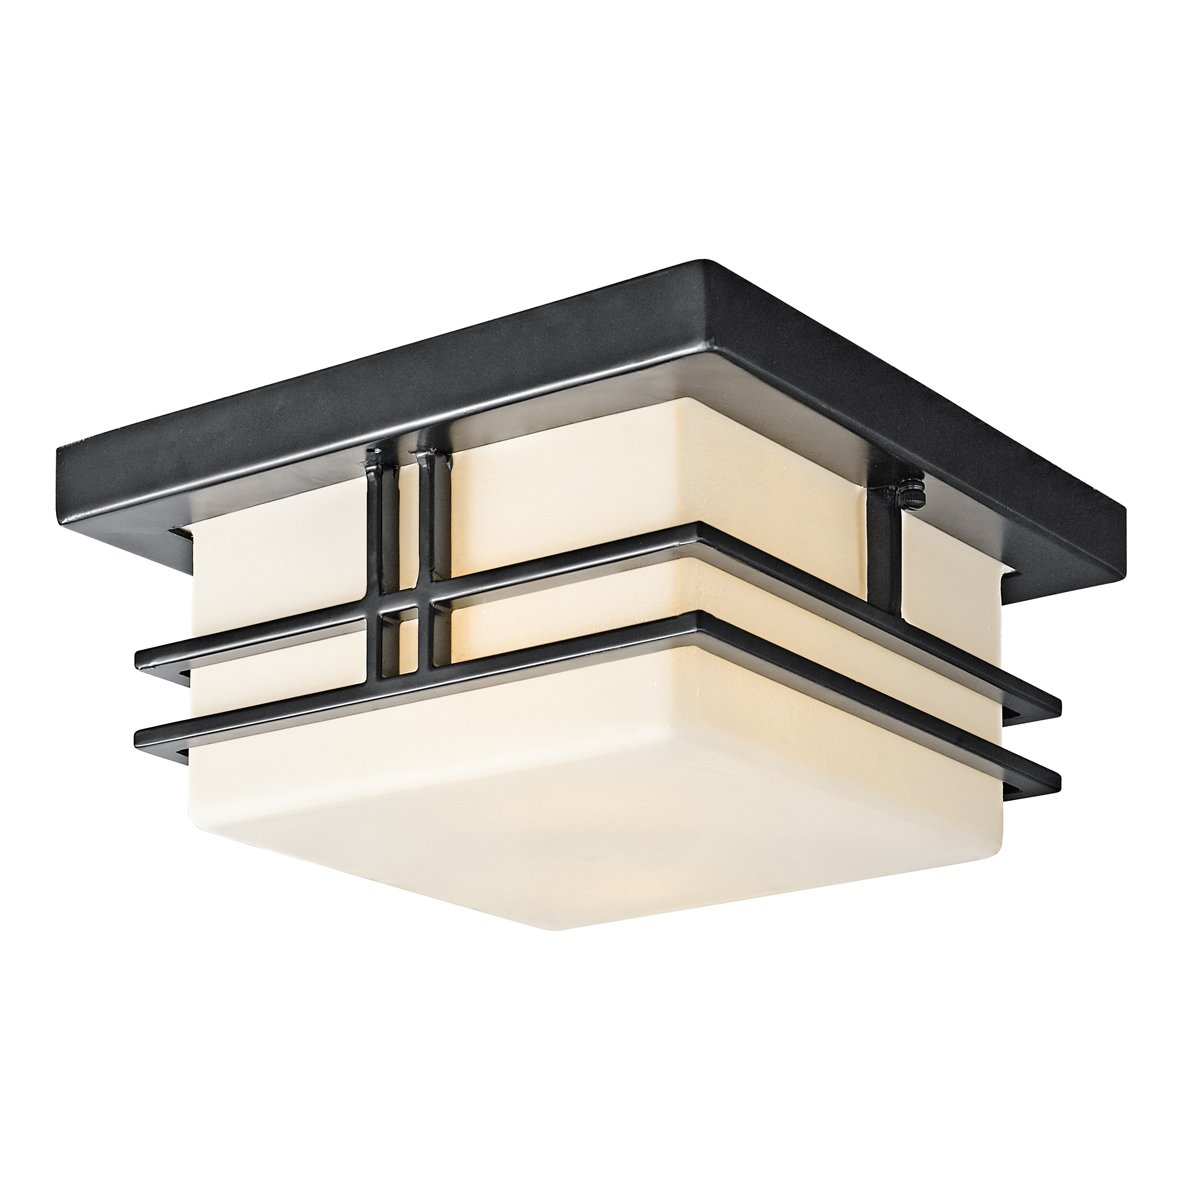 Kichler 49206BK Two Light Outdoor Ceiling Mount   Flush Mount Ceiling Light  Fixtures   Amazon.com